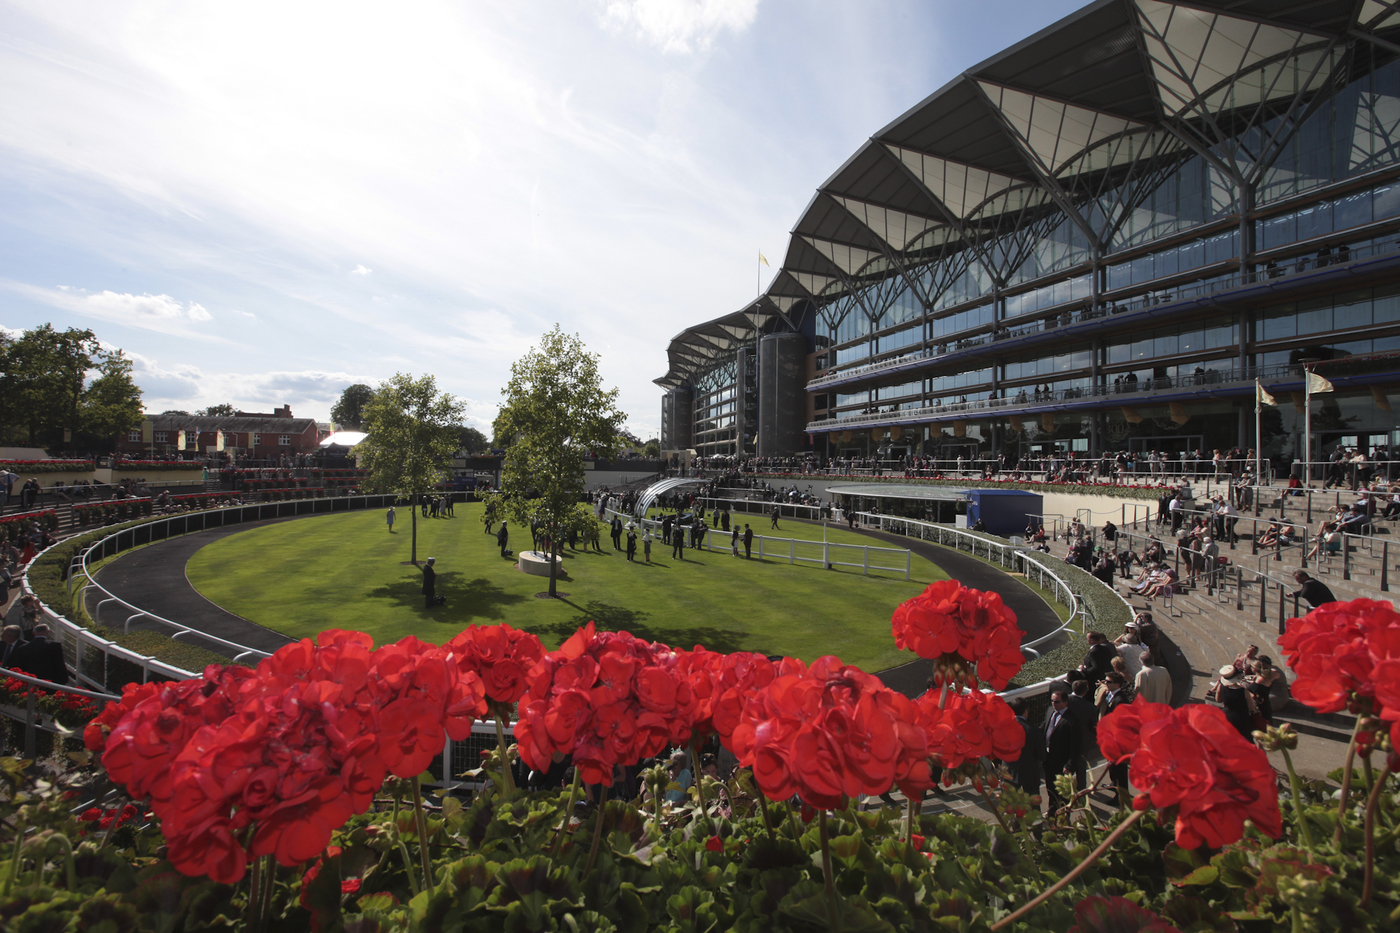 Longines Flat Racing Event: A day of glamour at Ascot with Aaron Kwok, Longines ambassador of Elegance 14